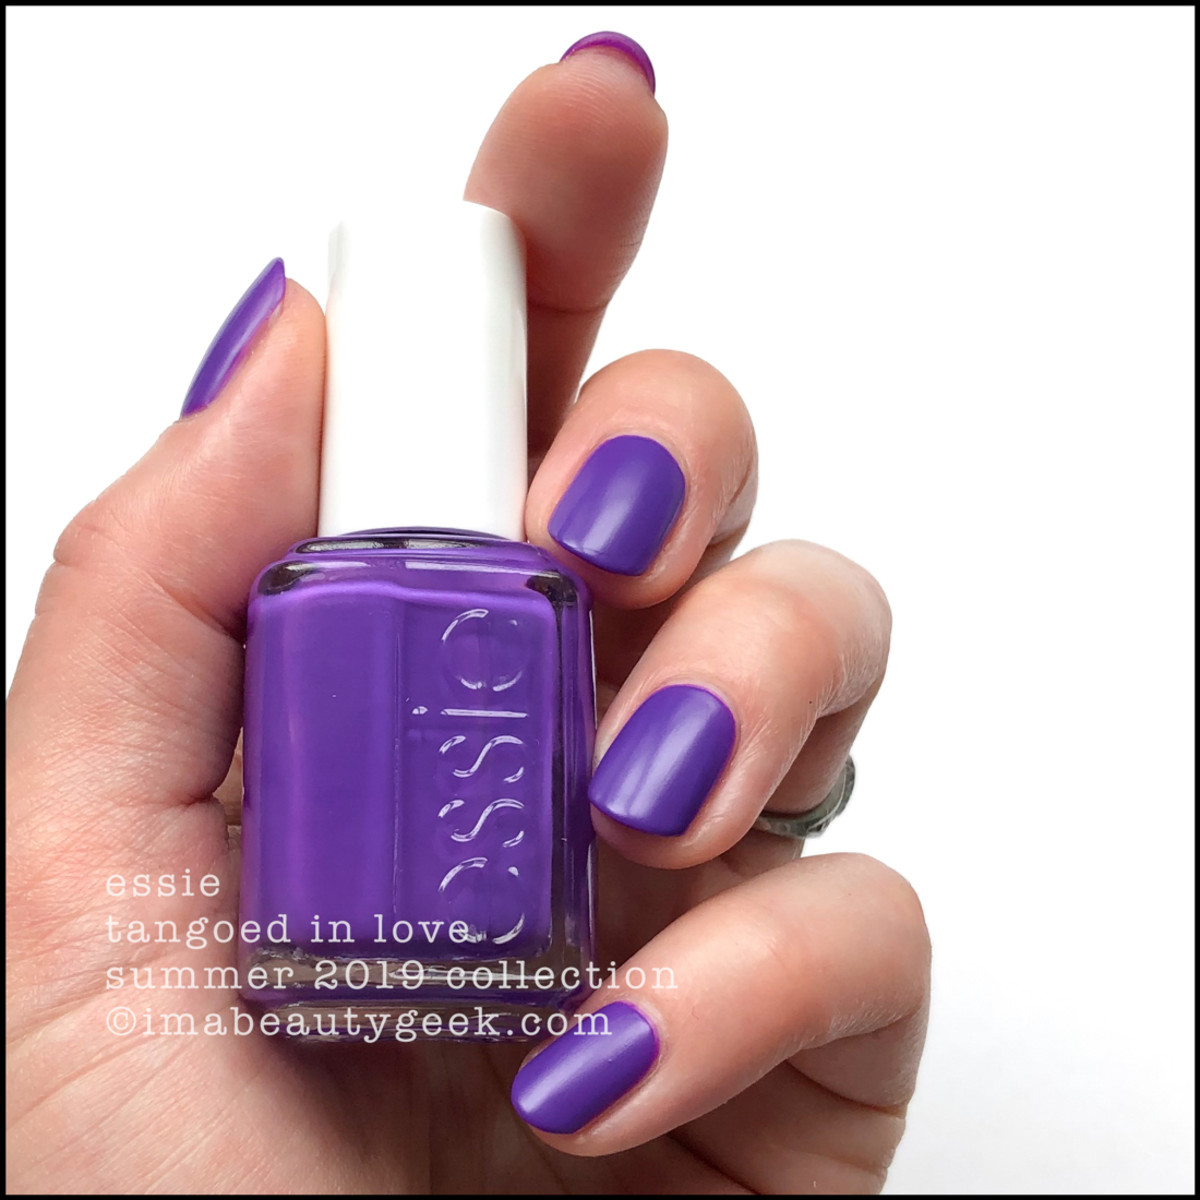 Essie Tangoed in Love - Essie Summer 2019 Neons